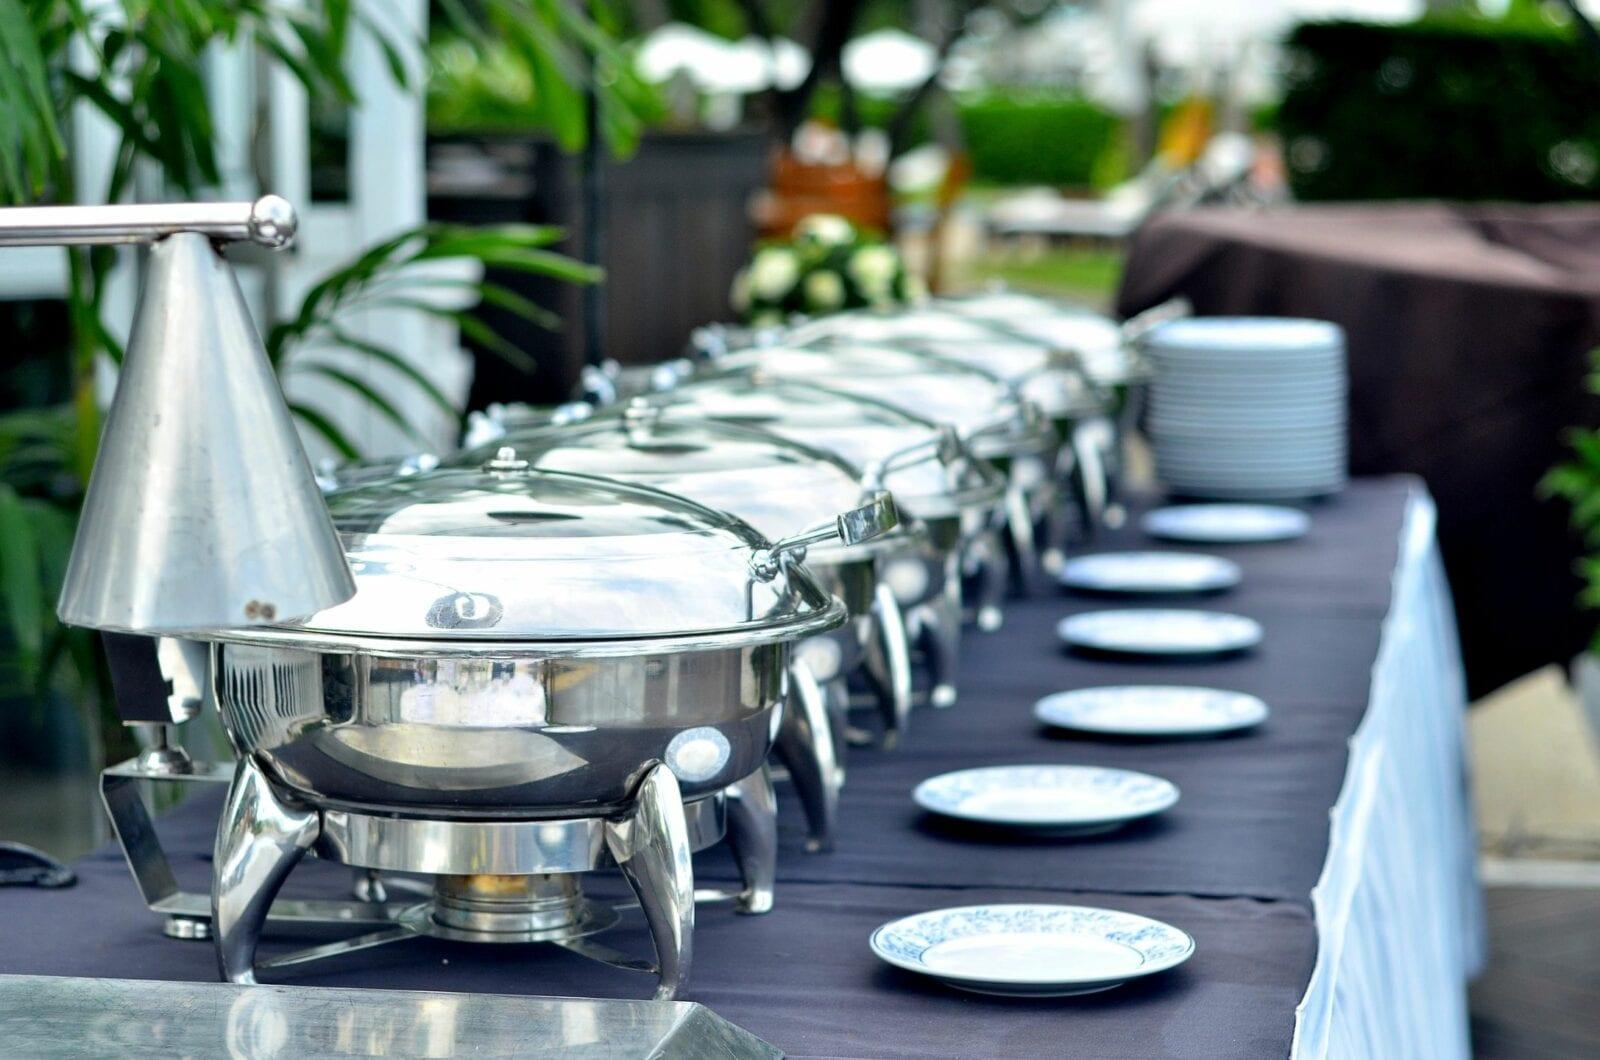 Catering and Event Business Financing